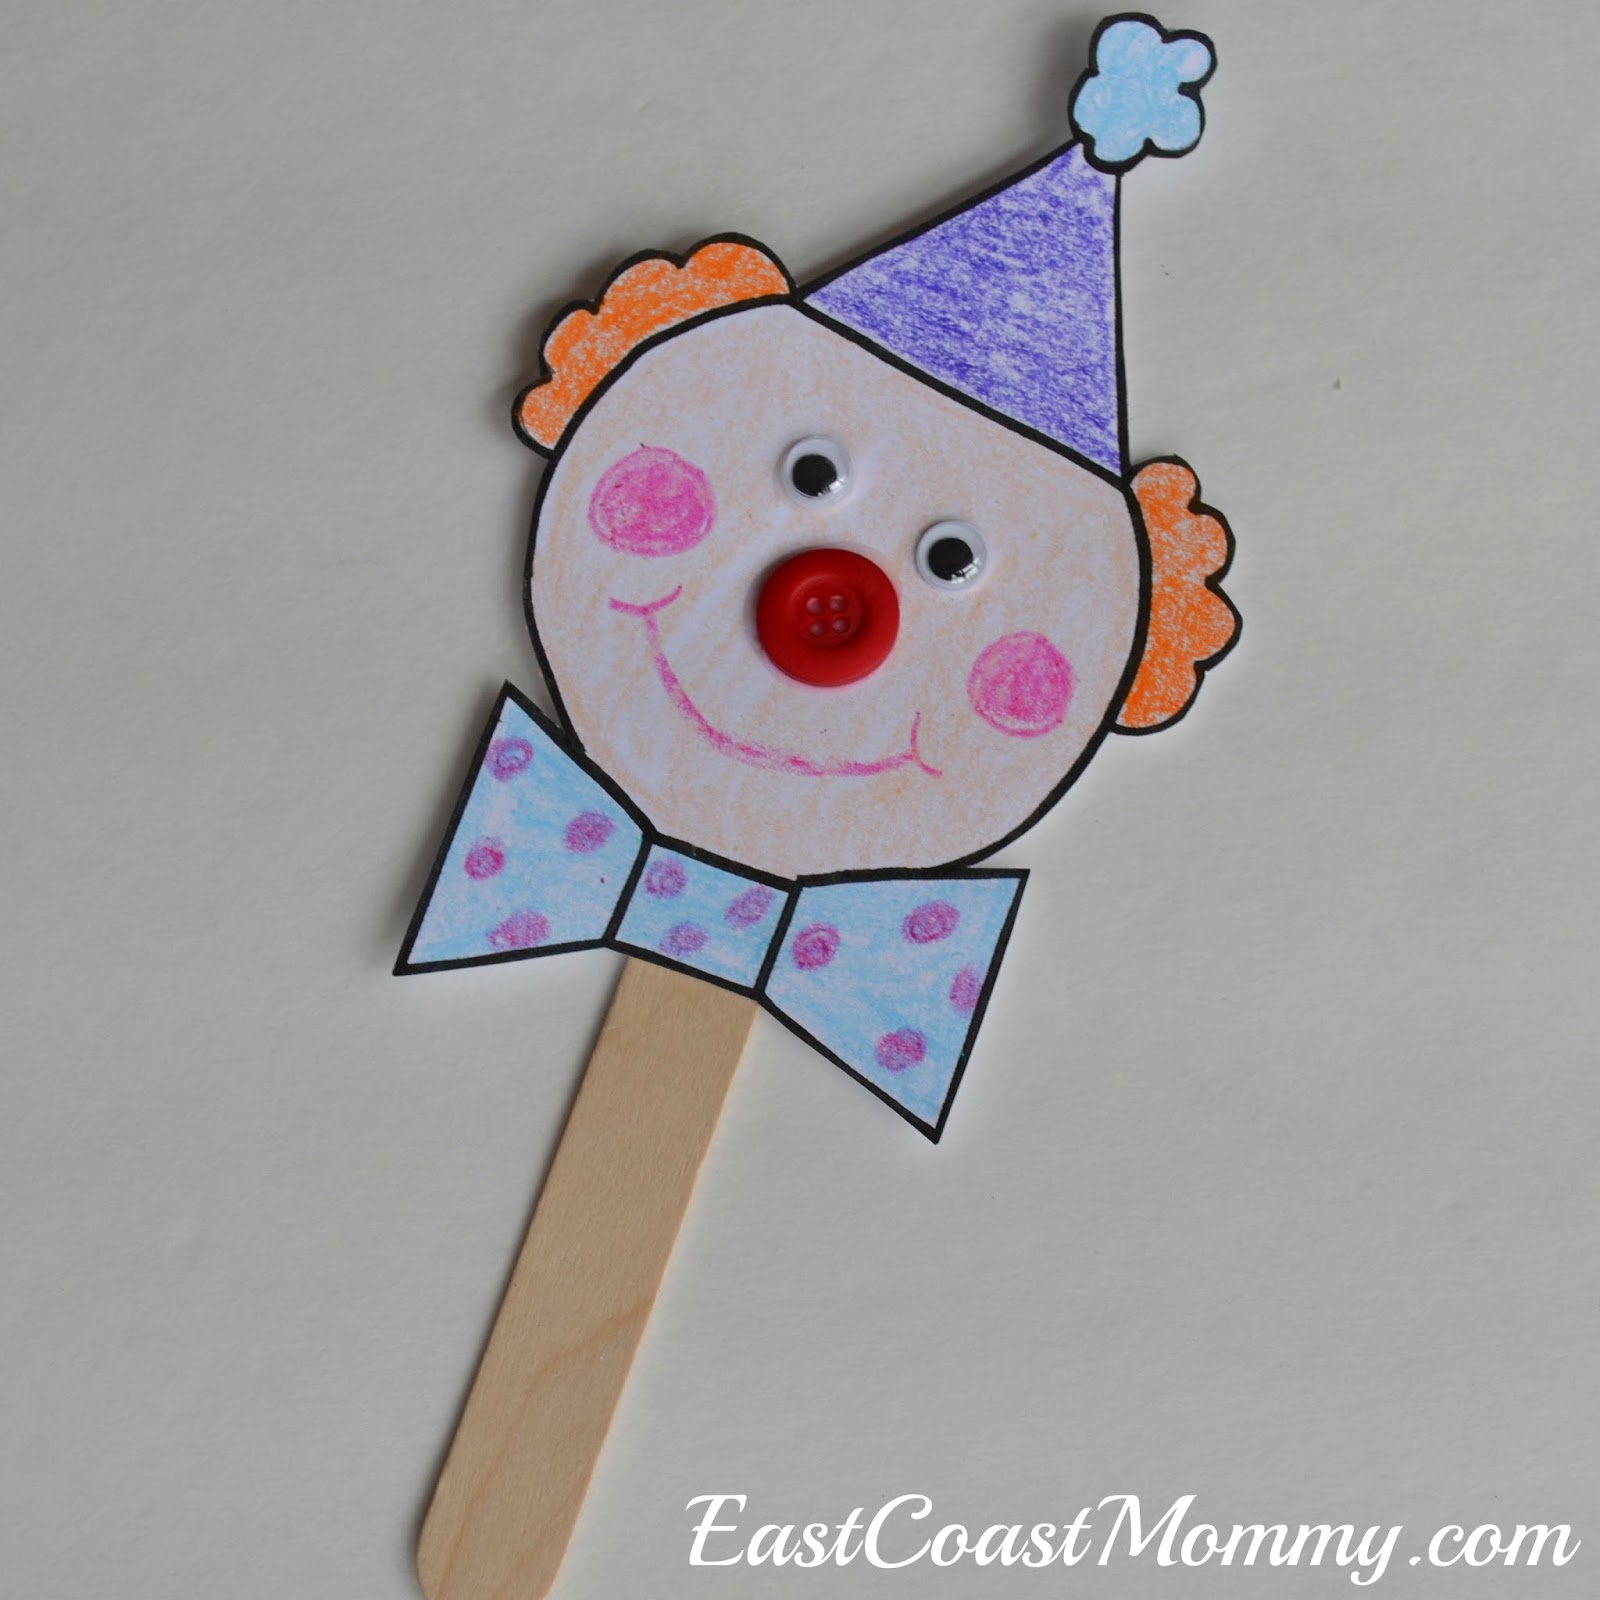 East Coast Mommy Circus Crafts With Free Printable